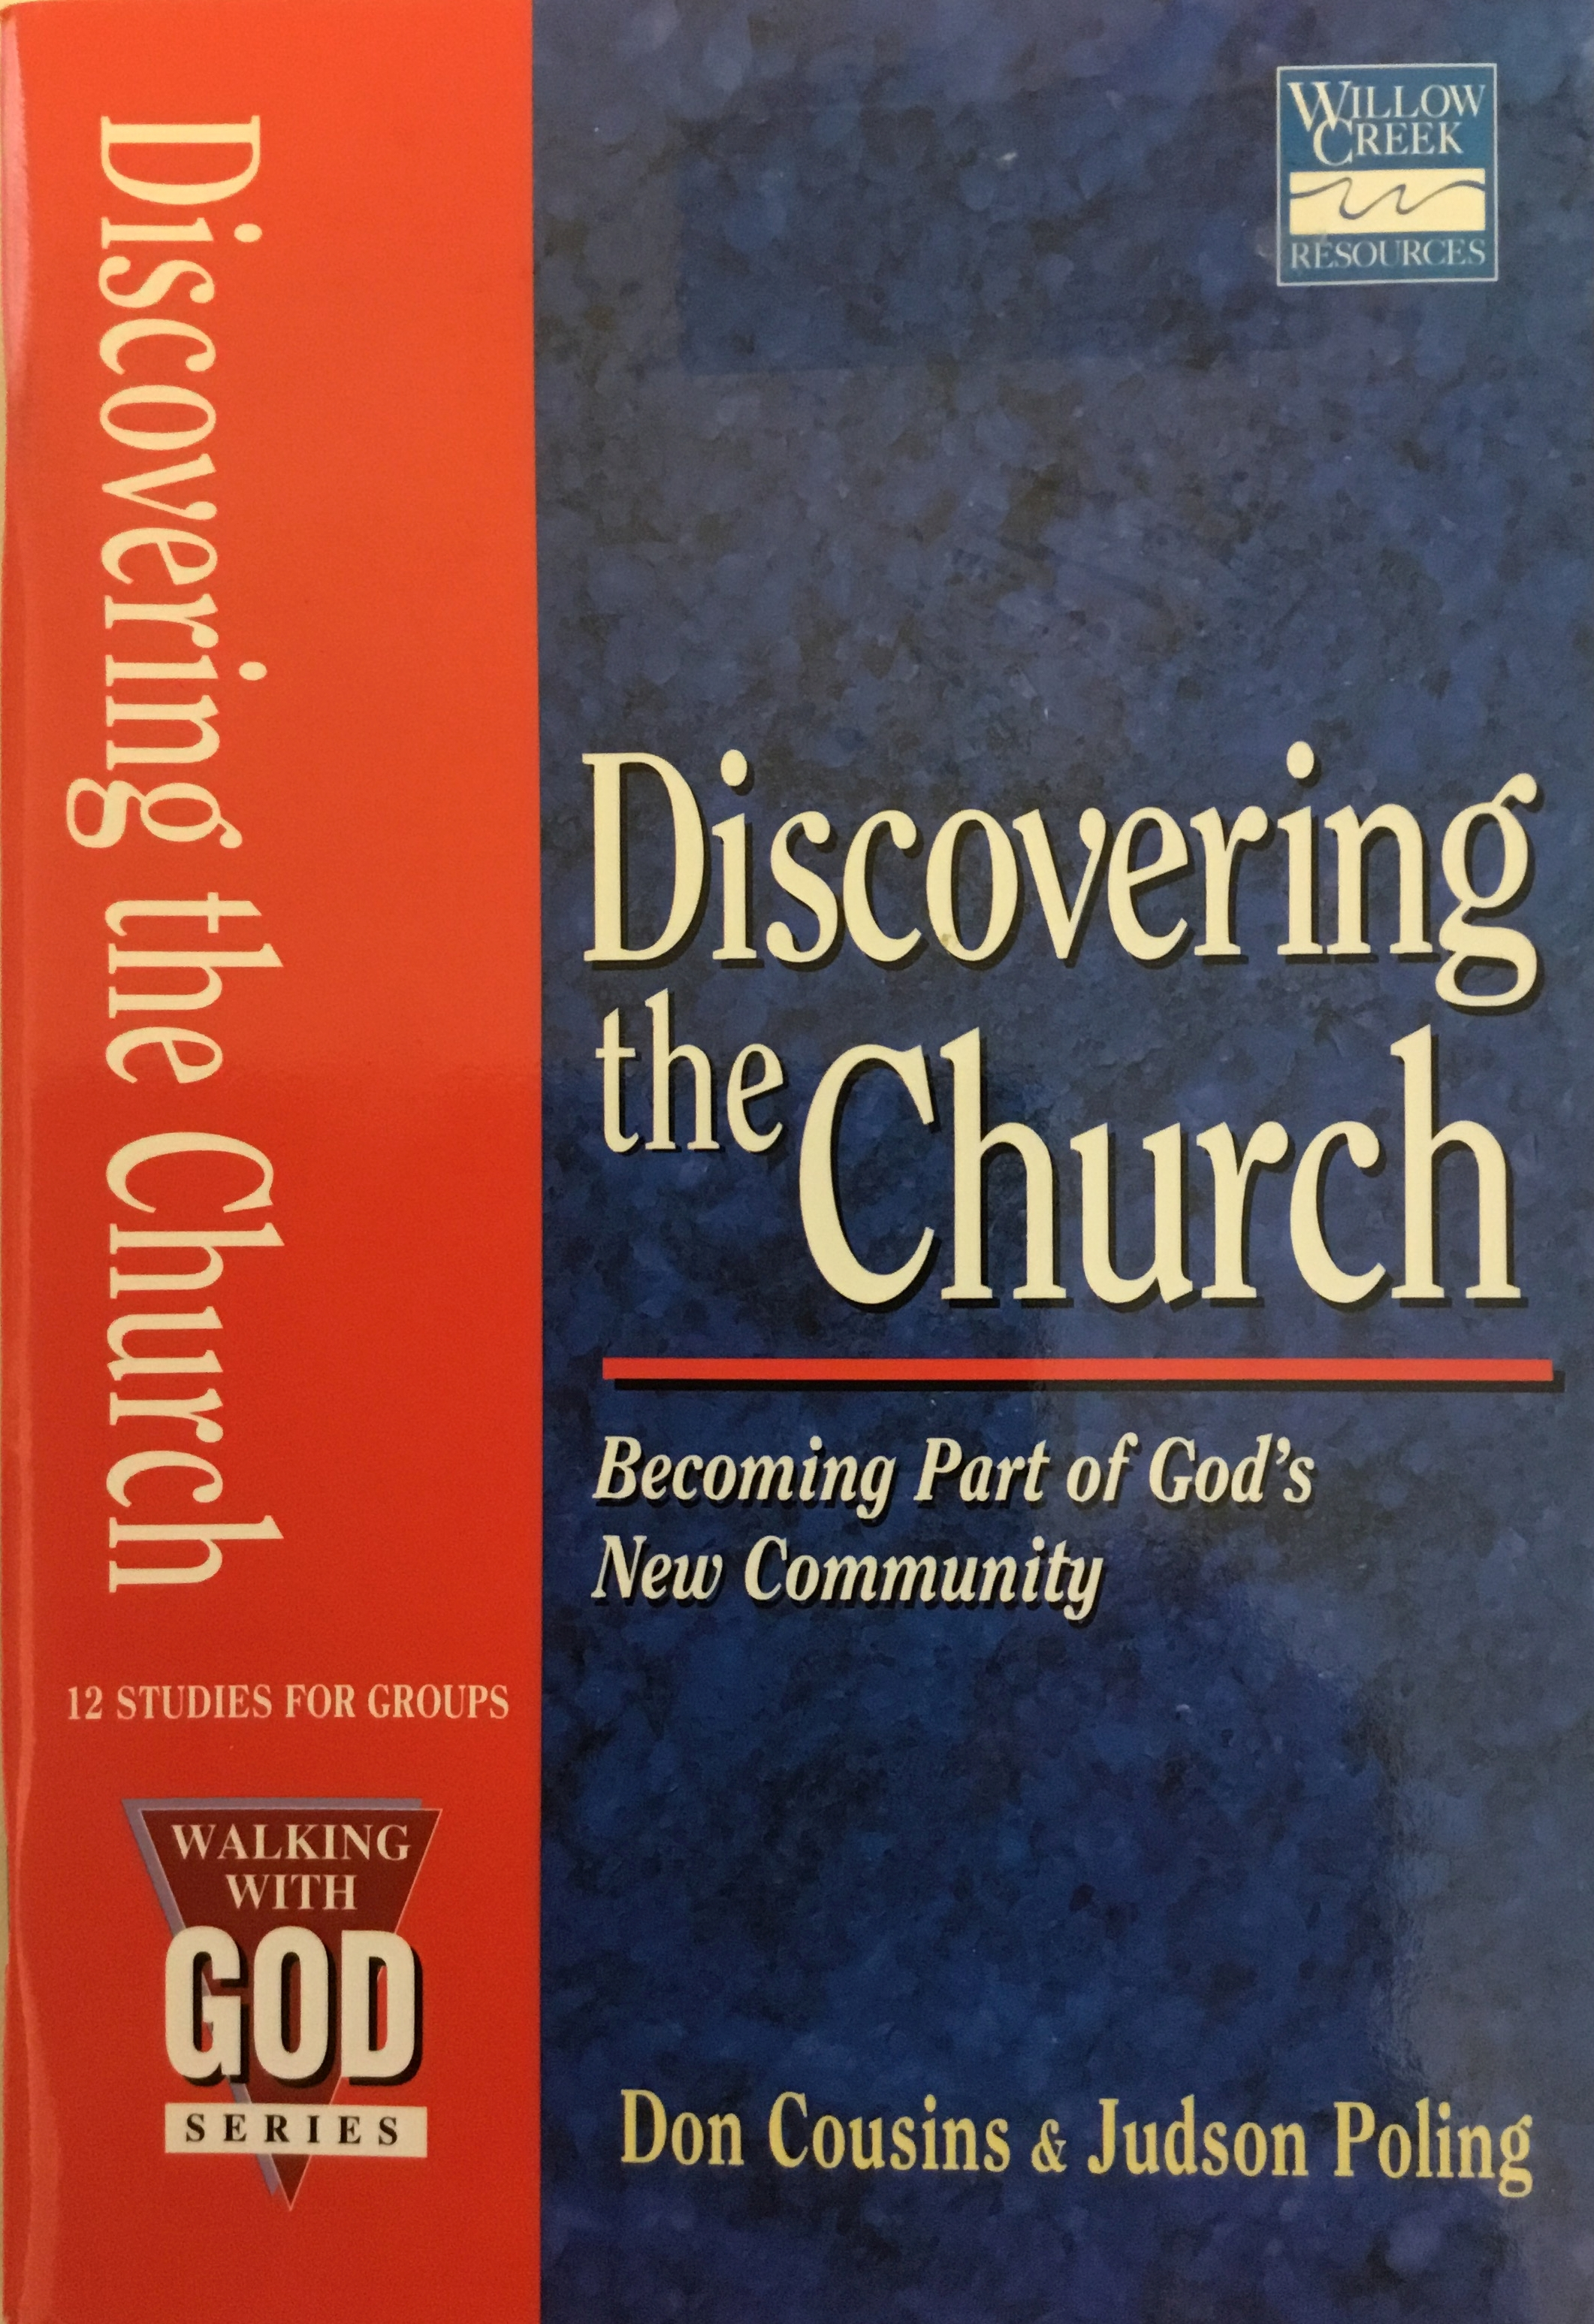 Discovering the church: becoming part of God's new community